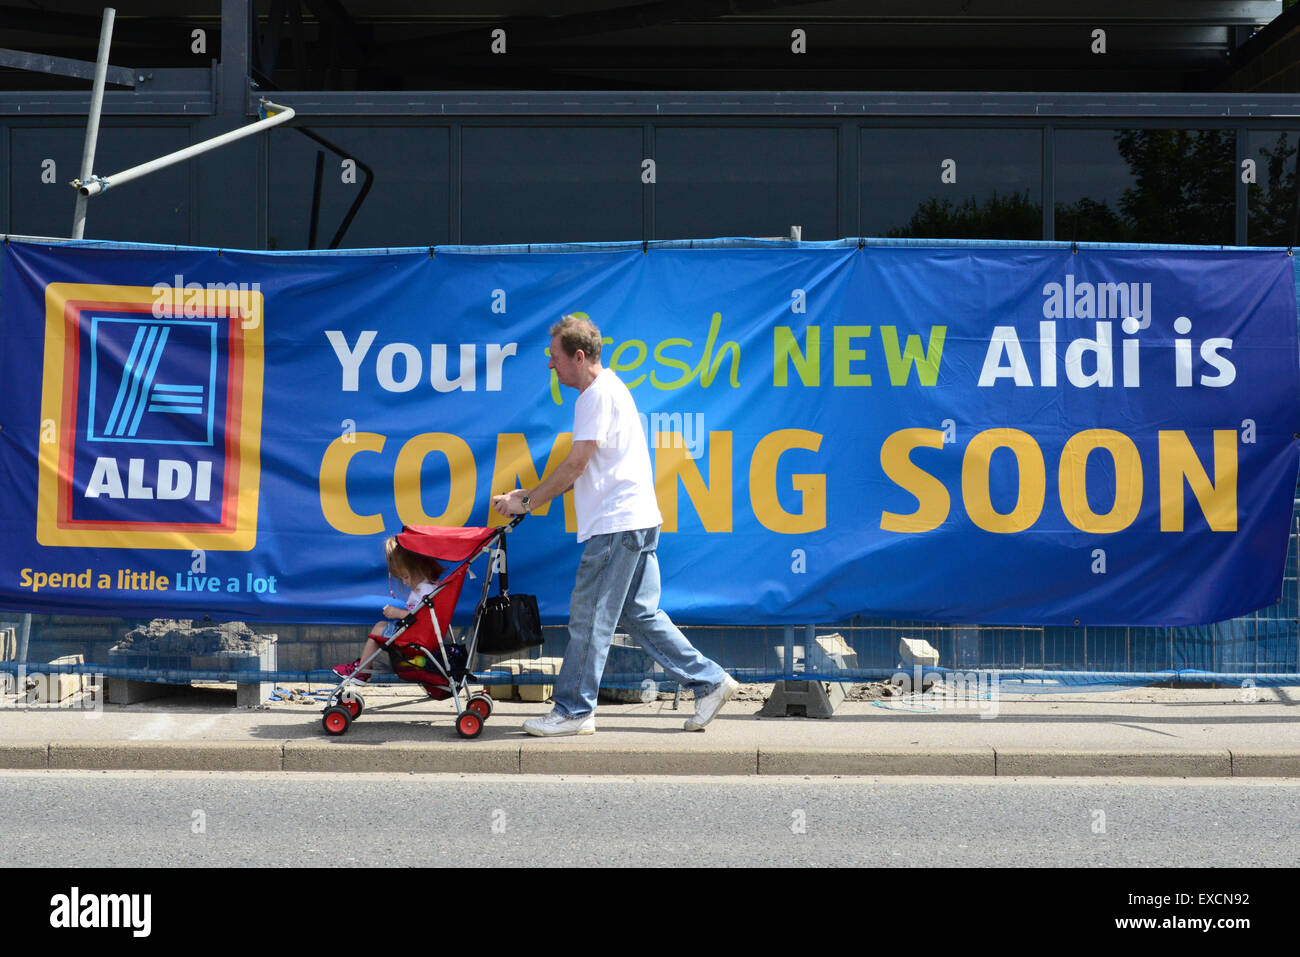 A man pushing a baby in a pushchair walks past a new Aldi Supermarket being built. Picture: Scott Bairstow/Alamy Stock Photo